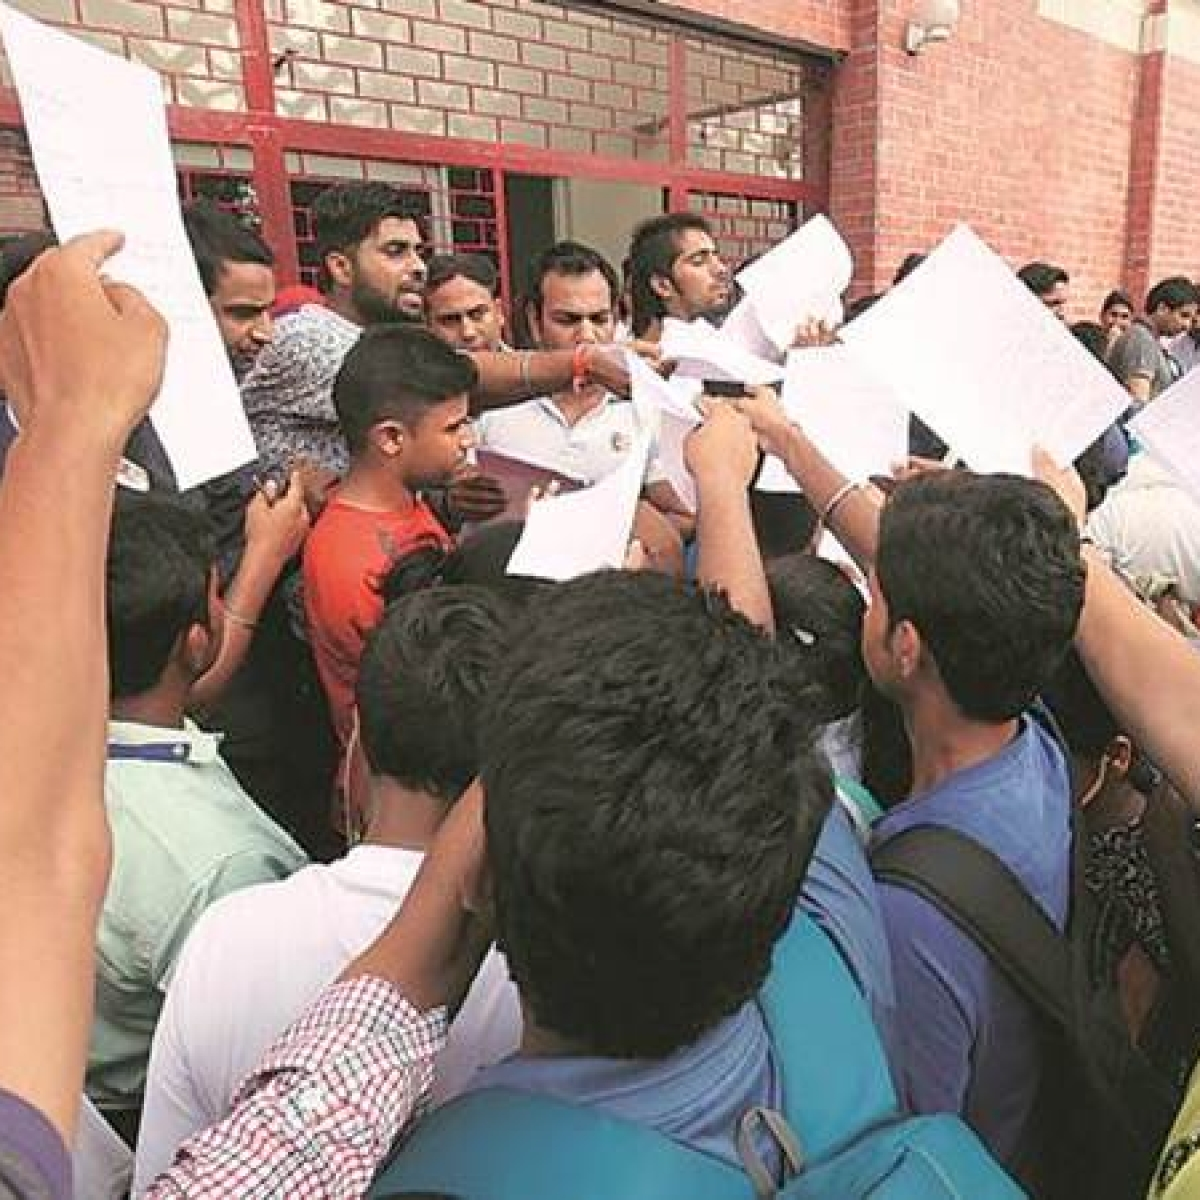 Mumbai: Fewer students apply for FYJC admissions this year even as seats were increased